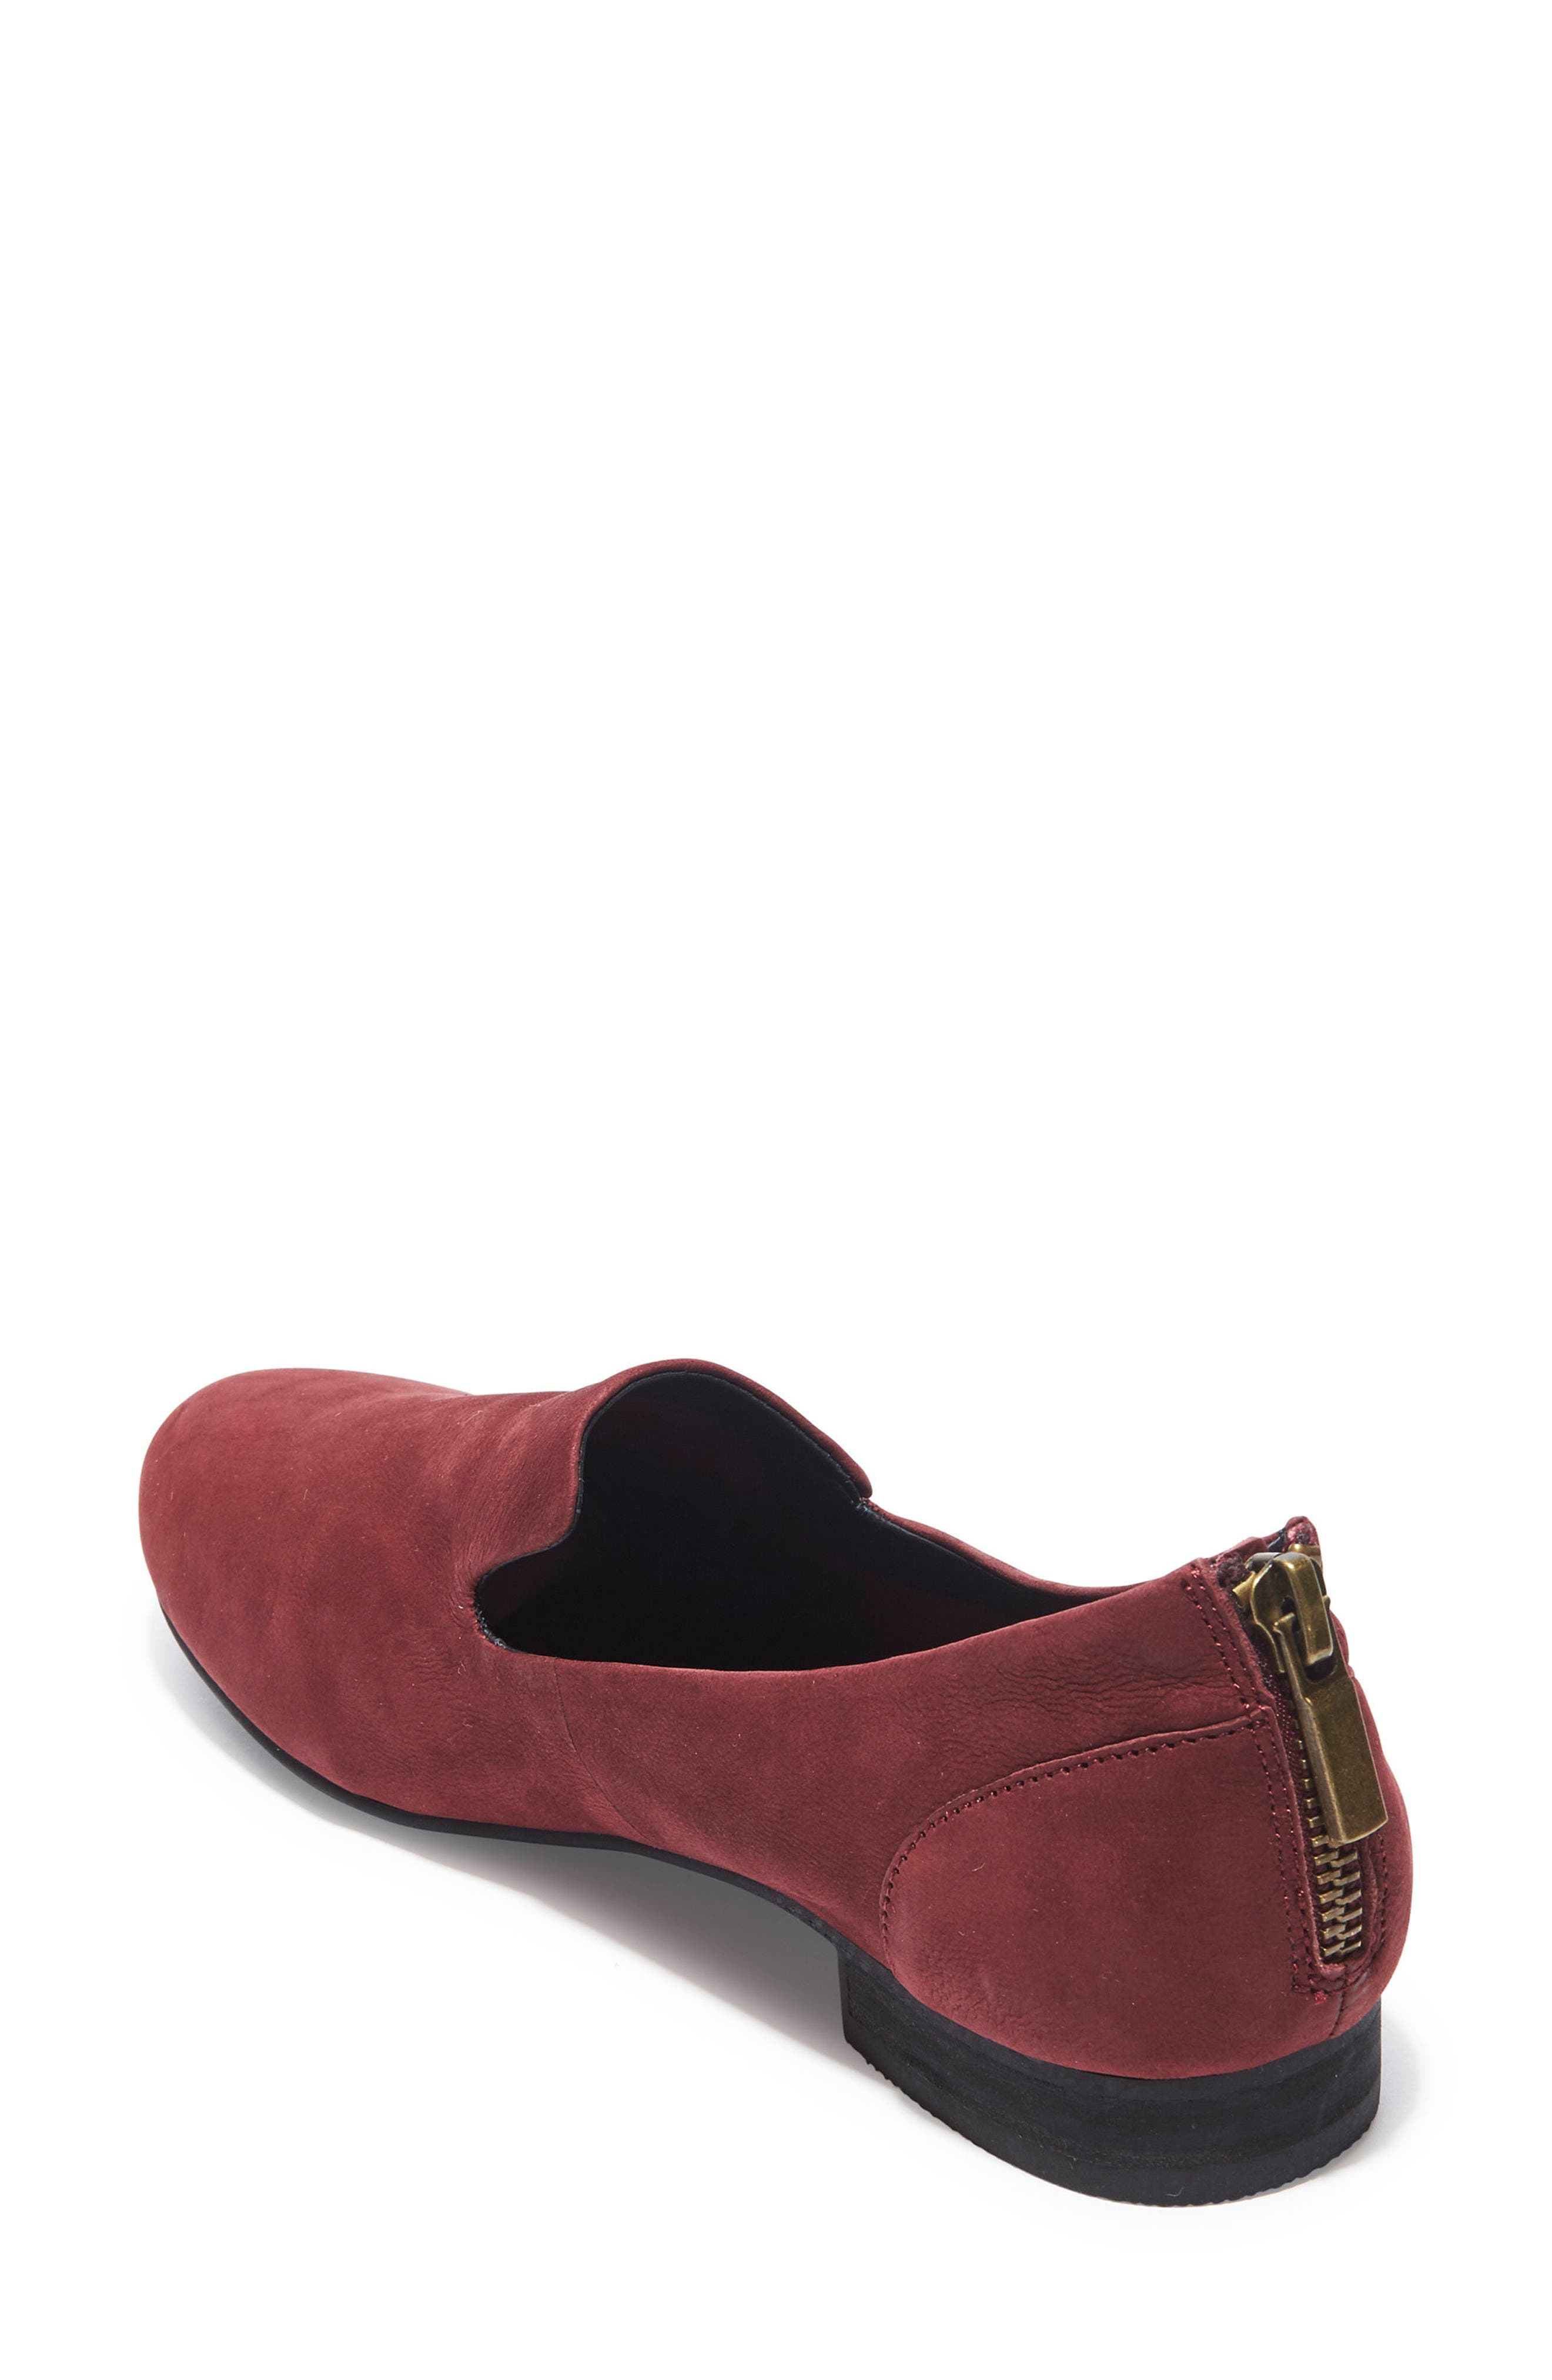 Marina Zip Loafer,                             Alternate thumbnail 8, color,